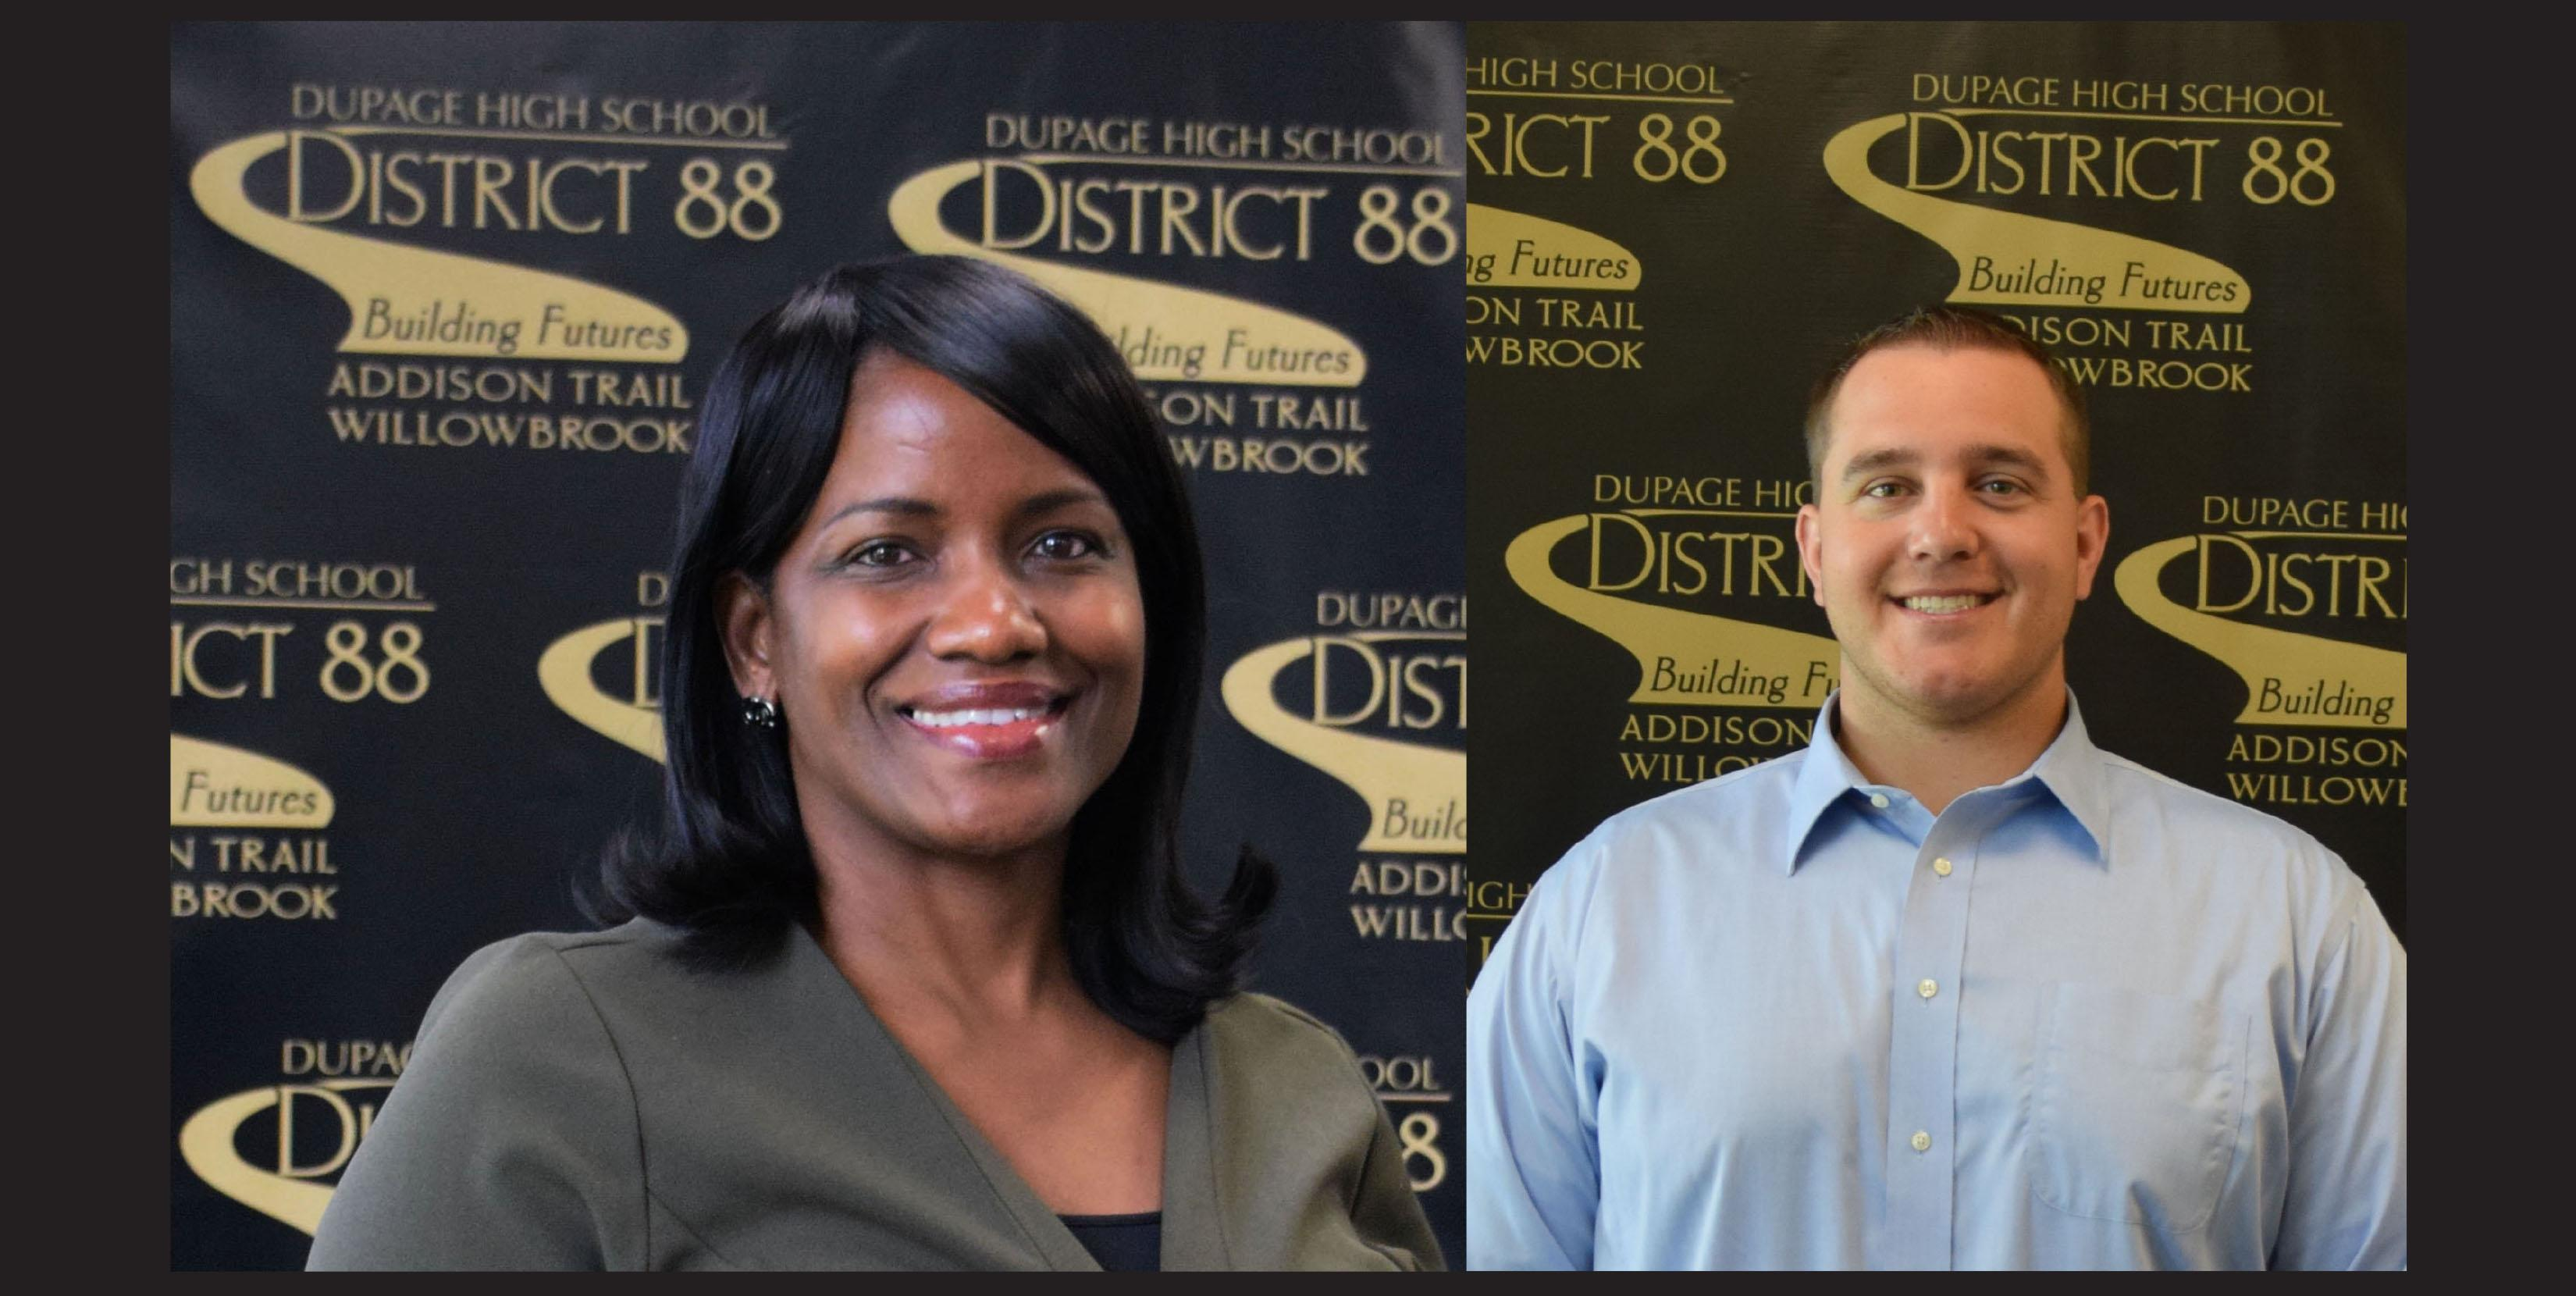 District 88 welcomes two new members to the District Administrative Team